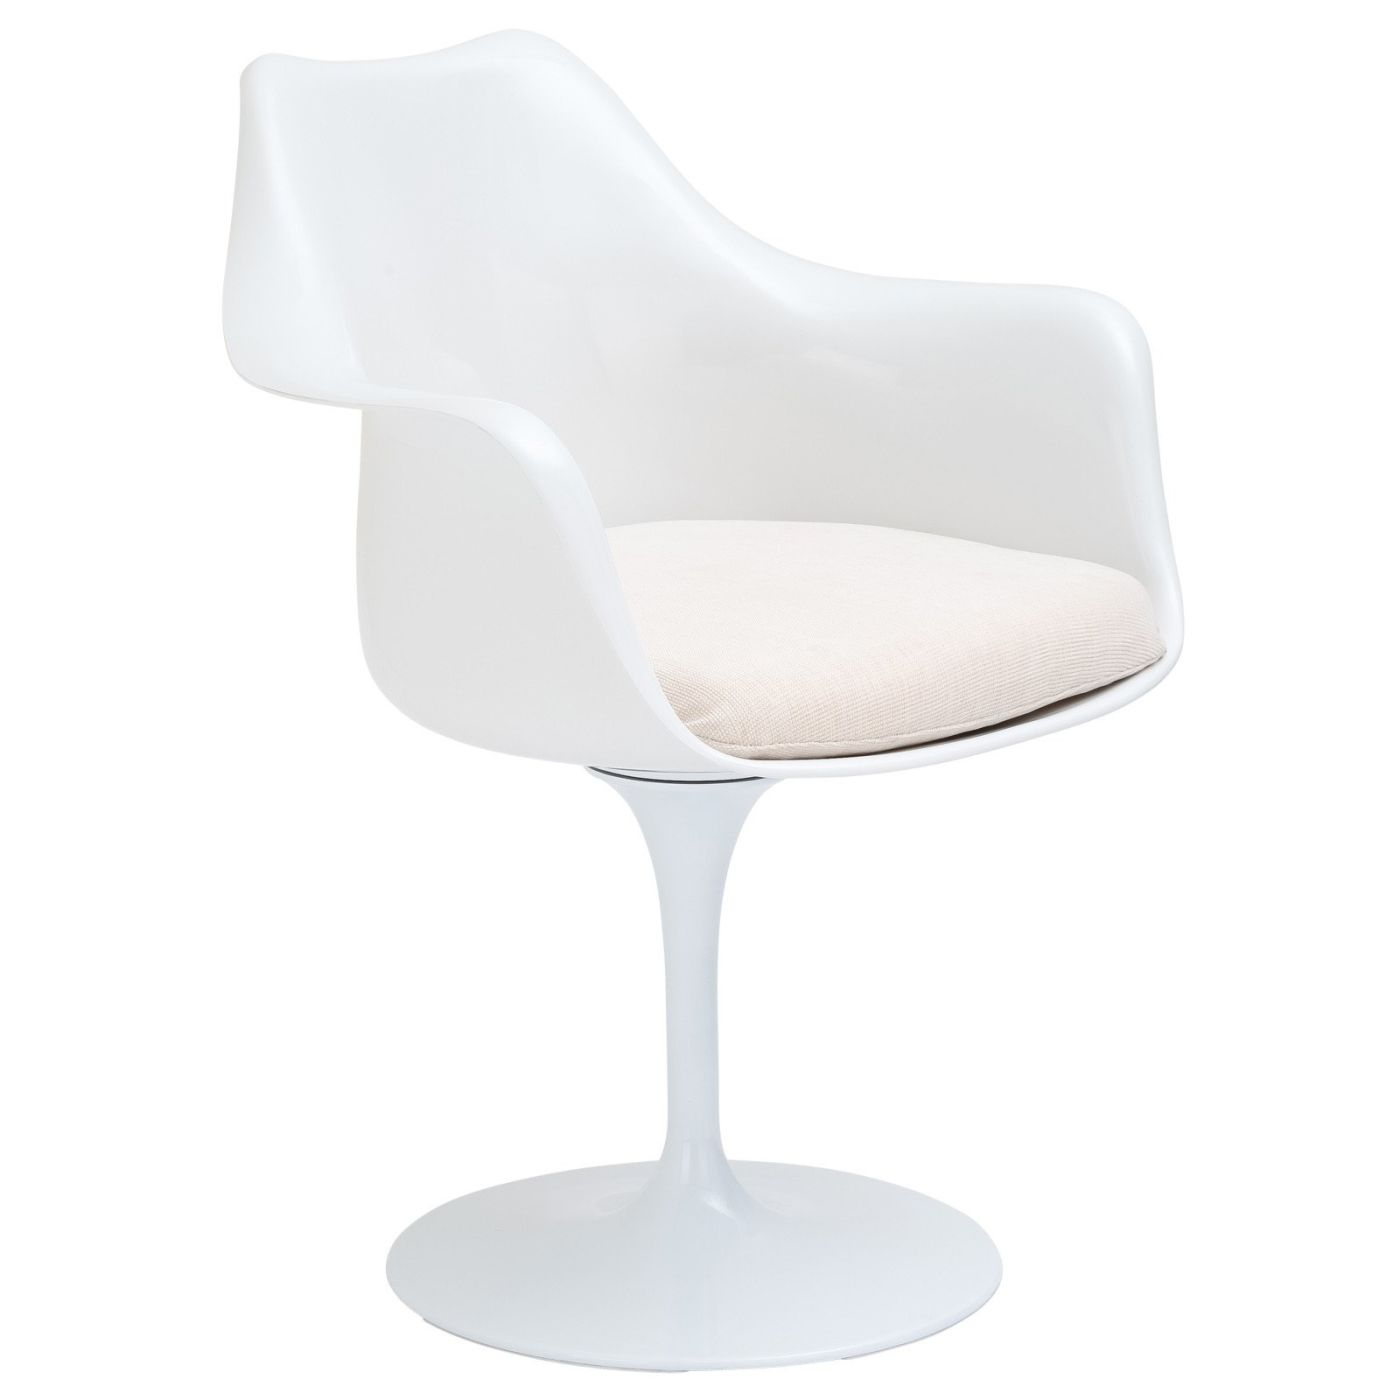 Admirable Daisy Arm Chair In White Dailytribune Chair Design For Home Dailytribuneorg